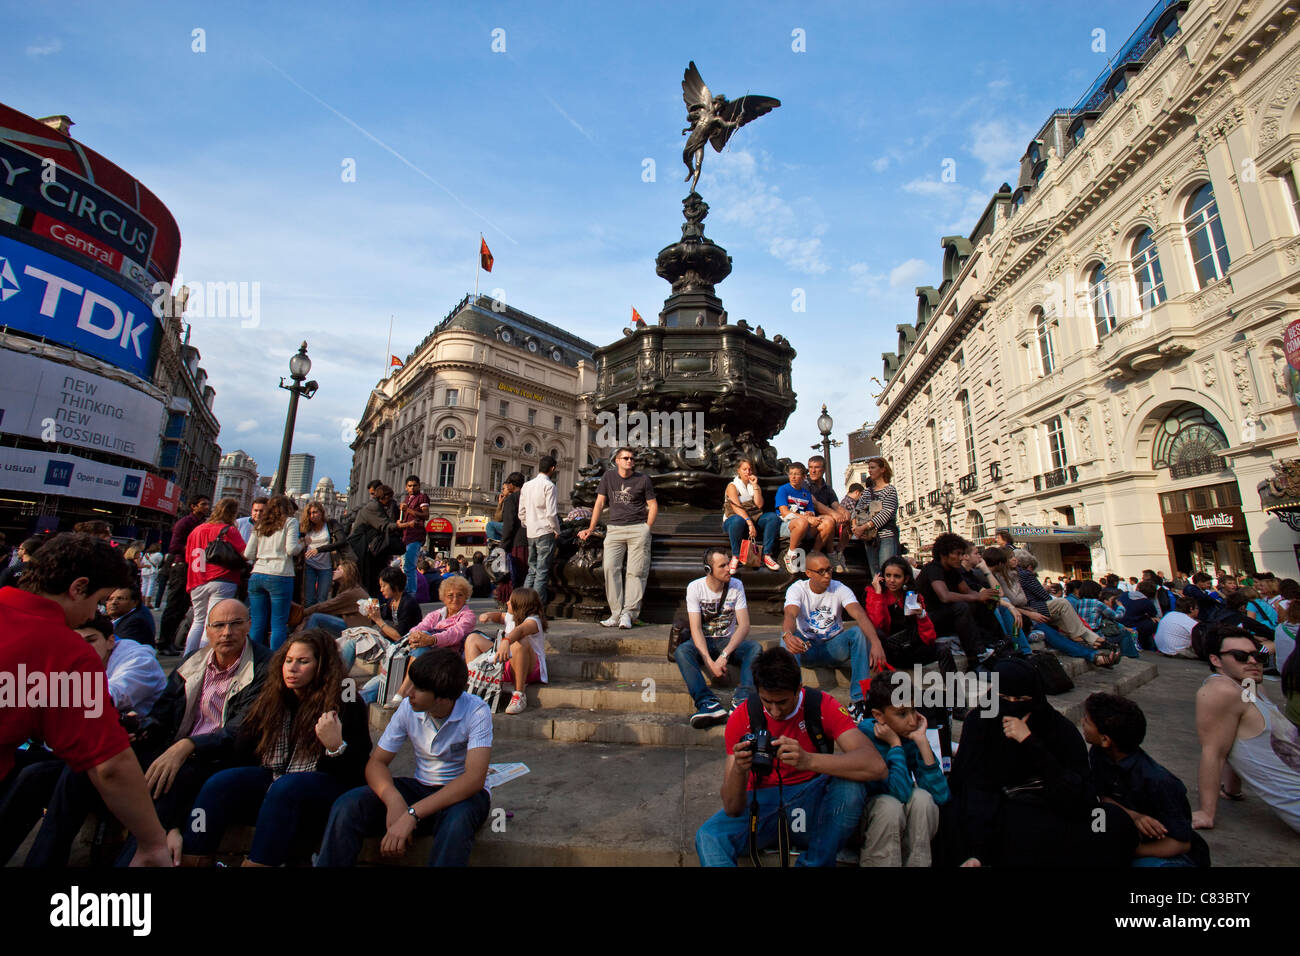 Statue of Eros, Piccadilly Circus, London, England - Stock Image